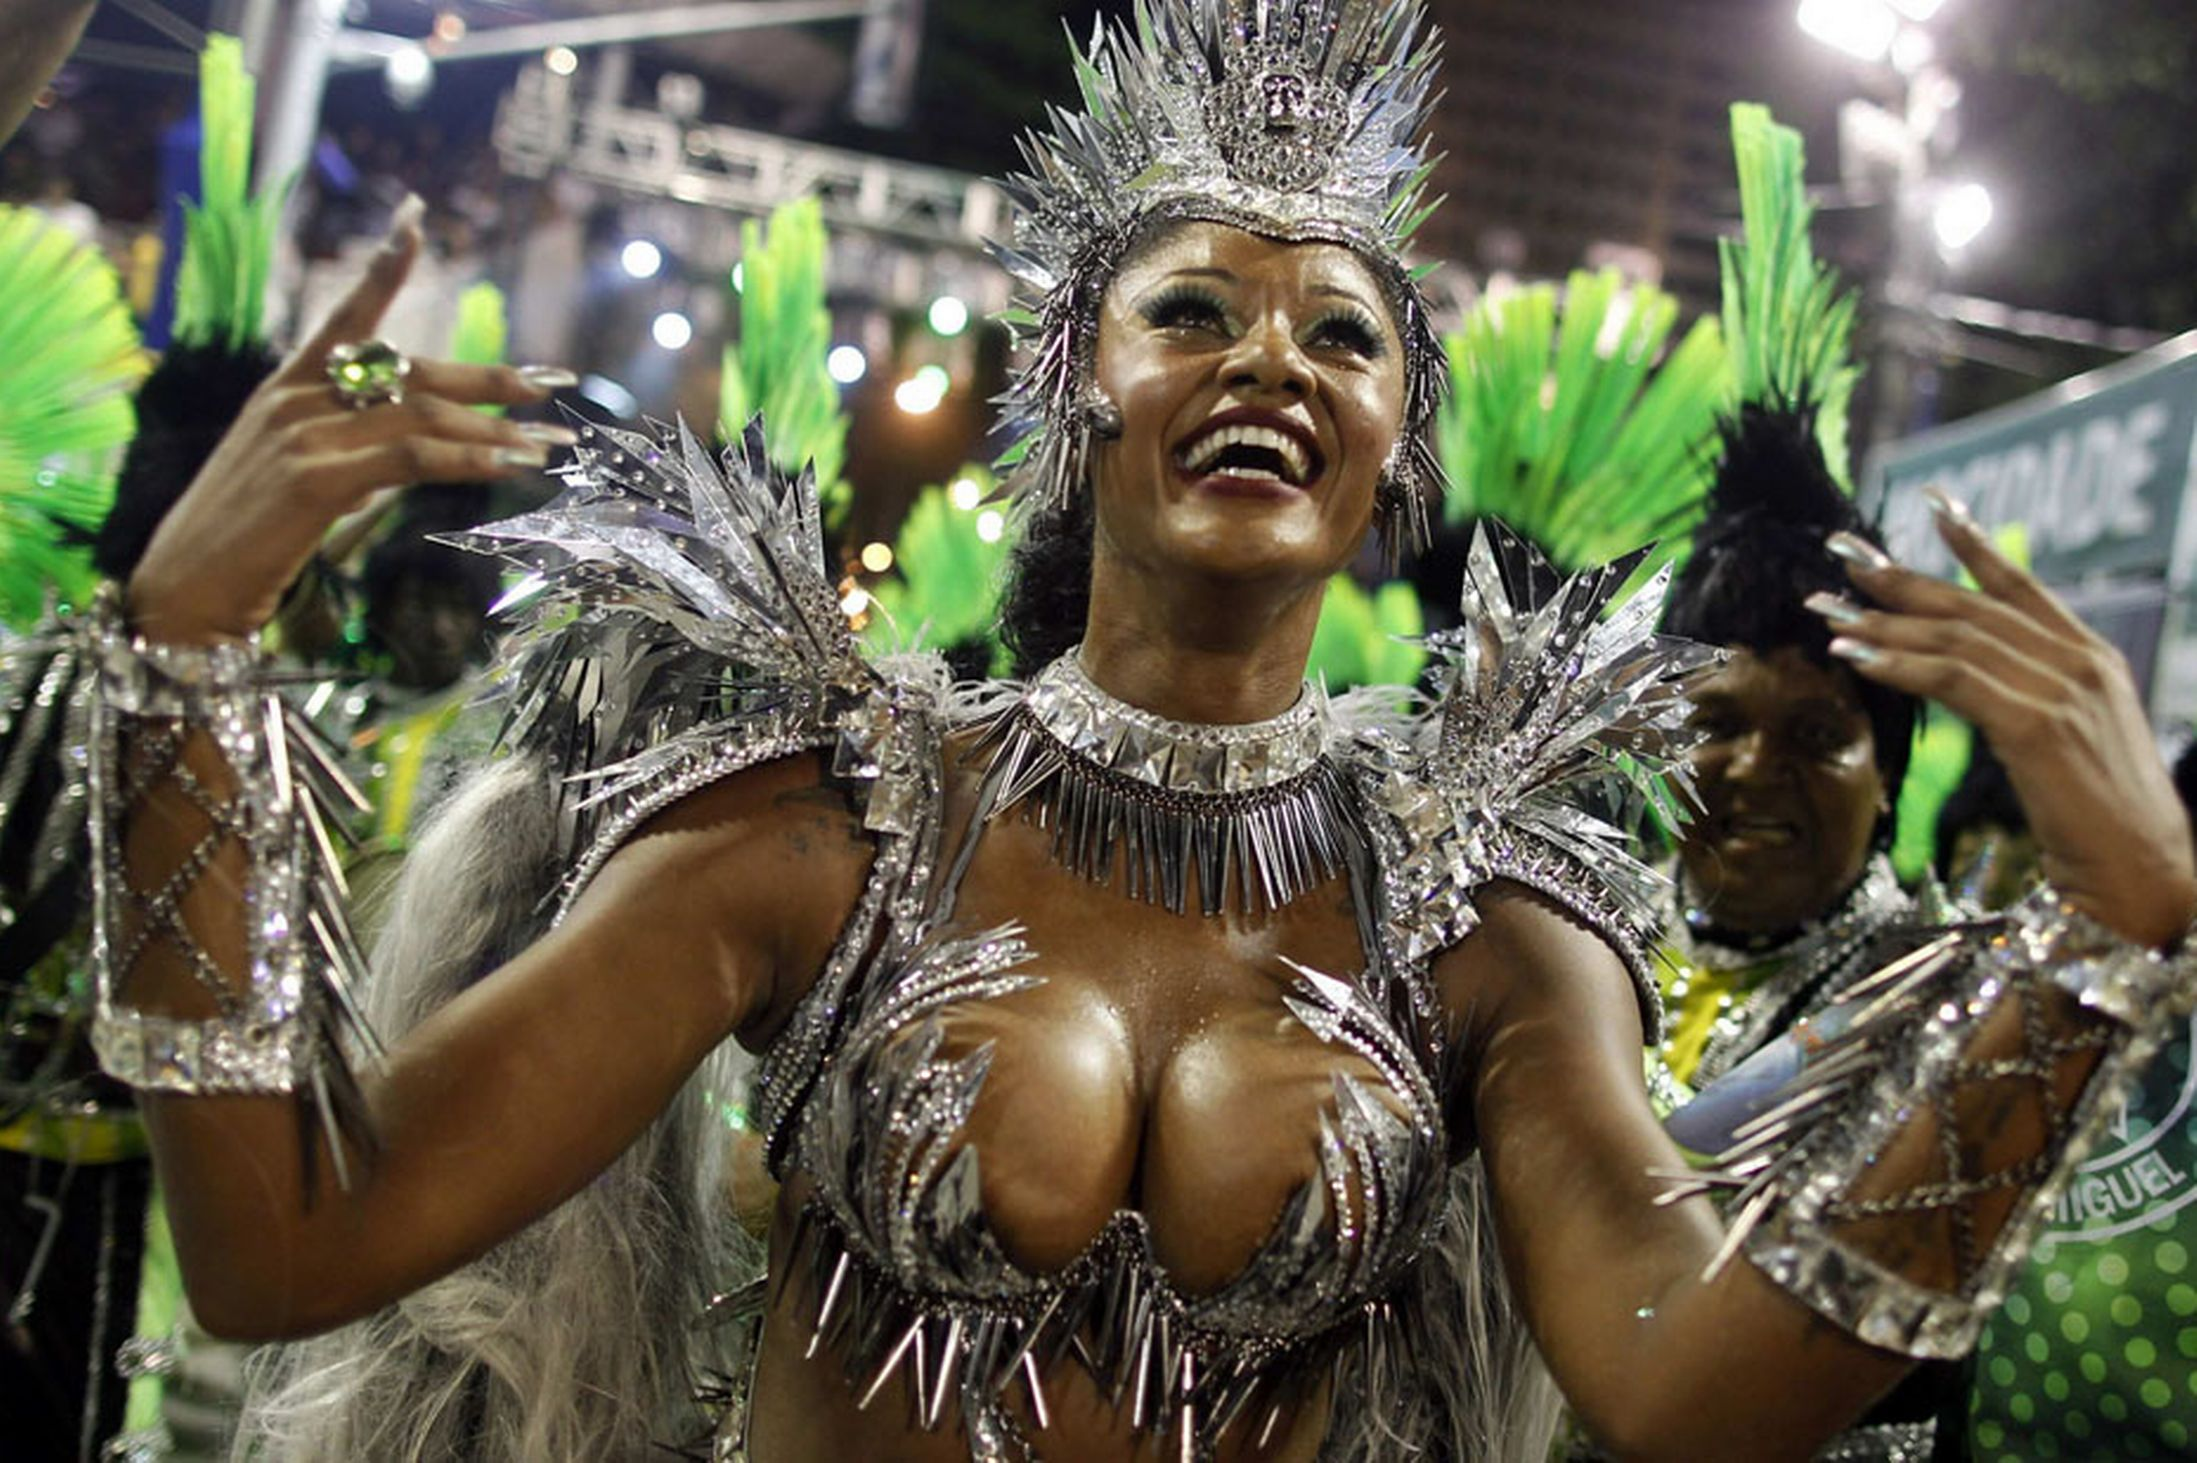 Drum Queen Camila Silva of the Mocidade Independente samba school dances on the first night of the annual Carnival parade in Rio de Janeiro's Sambadrome. Copyright © 2013 euronews